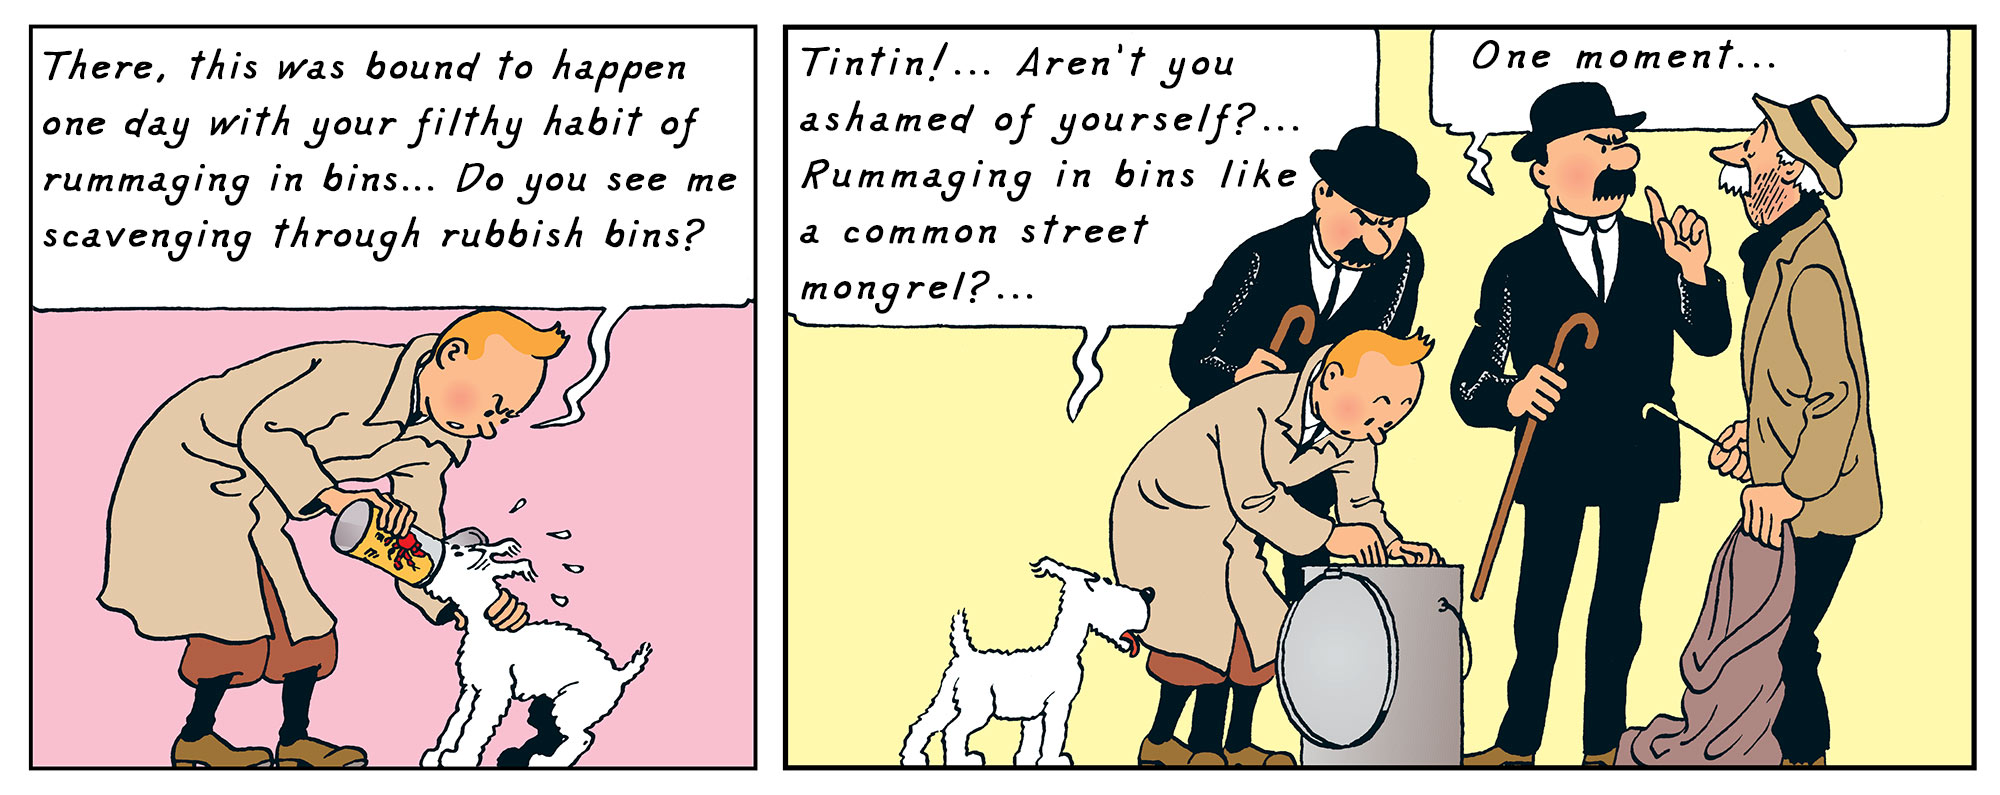 Tintin - The Adventures of Tintin - The Crab with the Golden Claws - Snowy